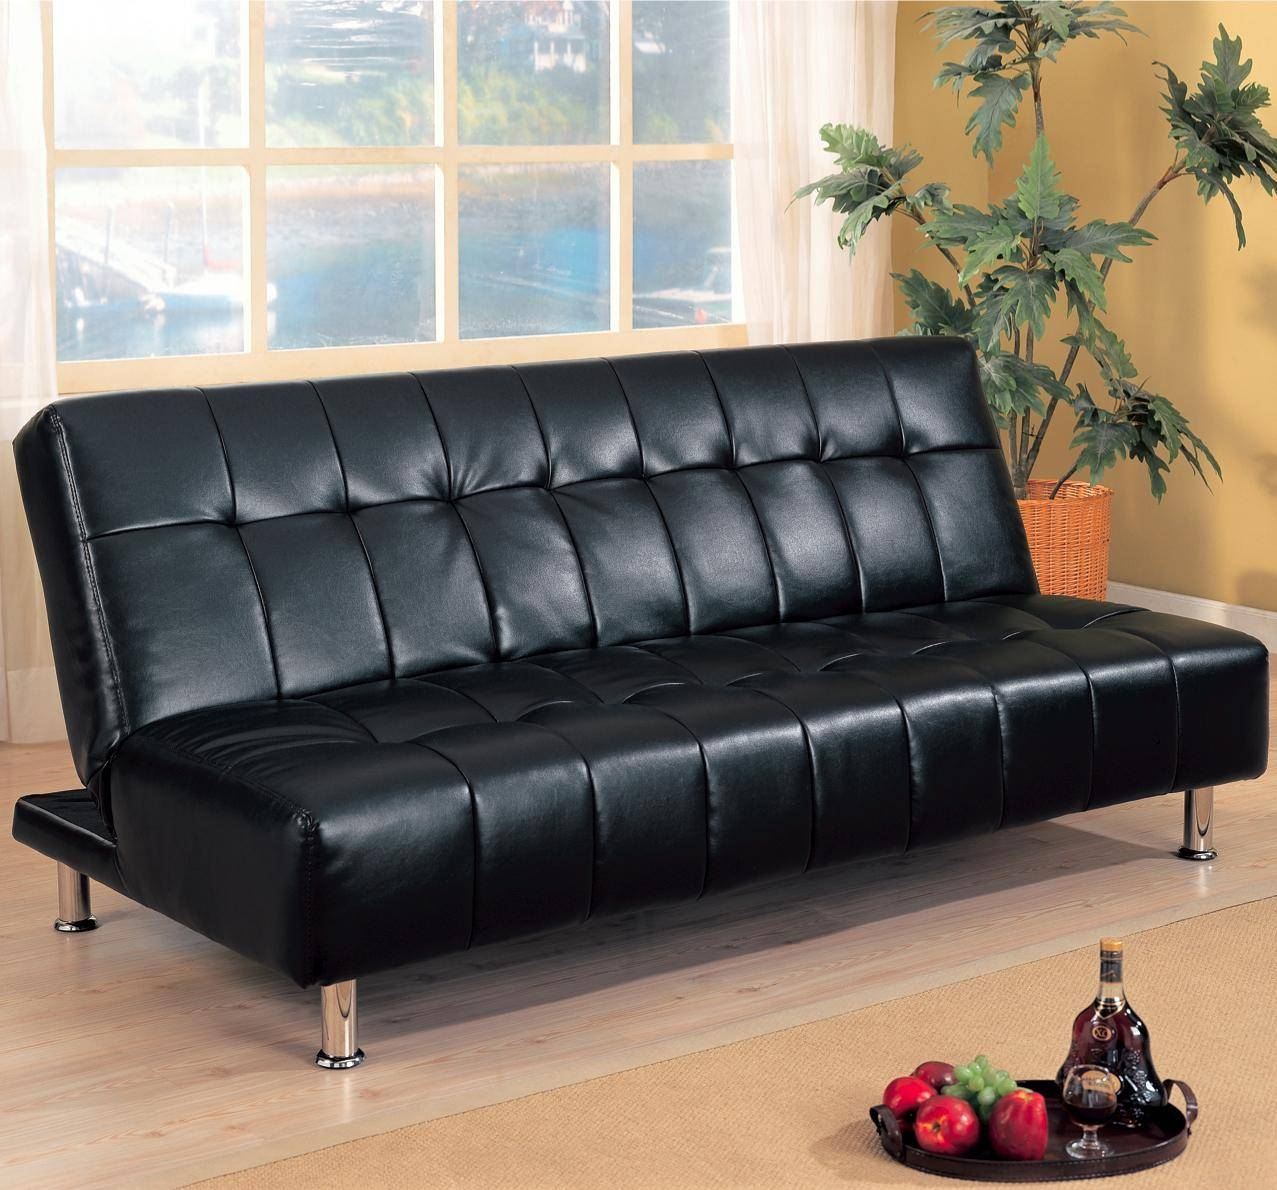 Faux Leather Armless Convertible Sofa Bed | Big City Futon Throughout City Sofa Beds (View 8 of 30)